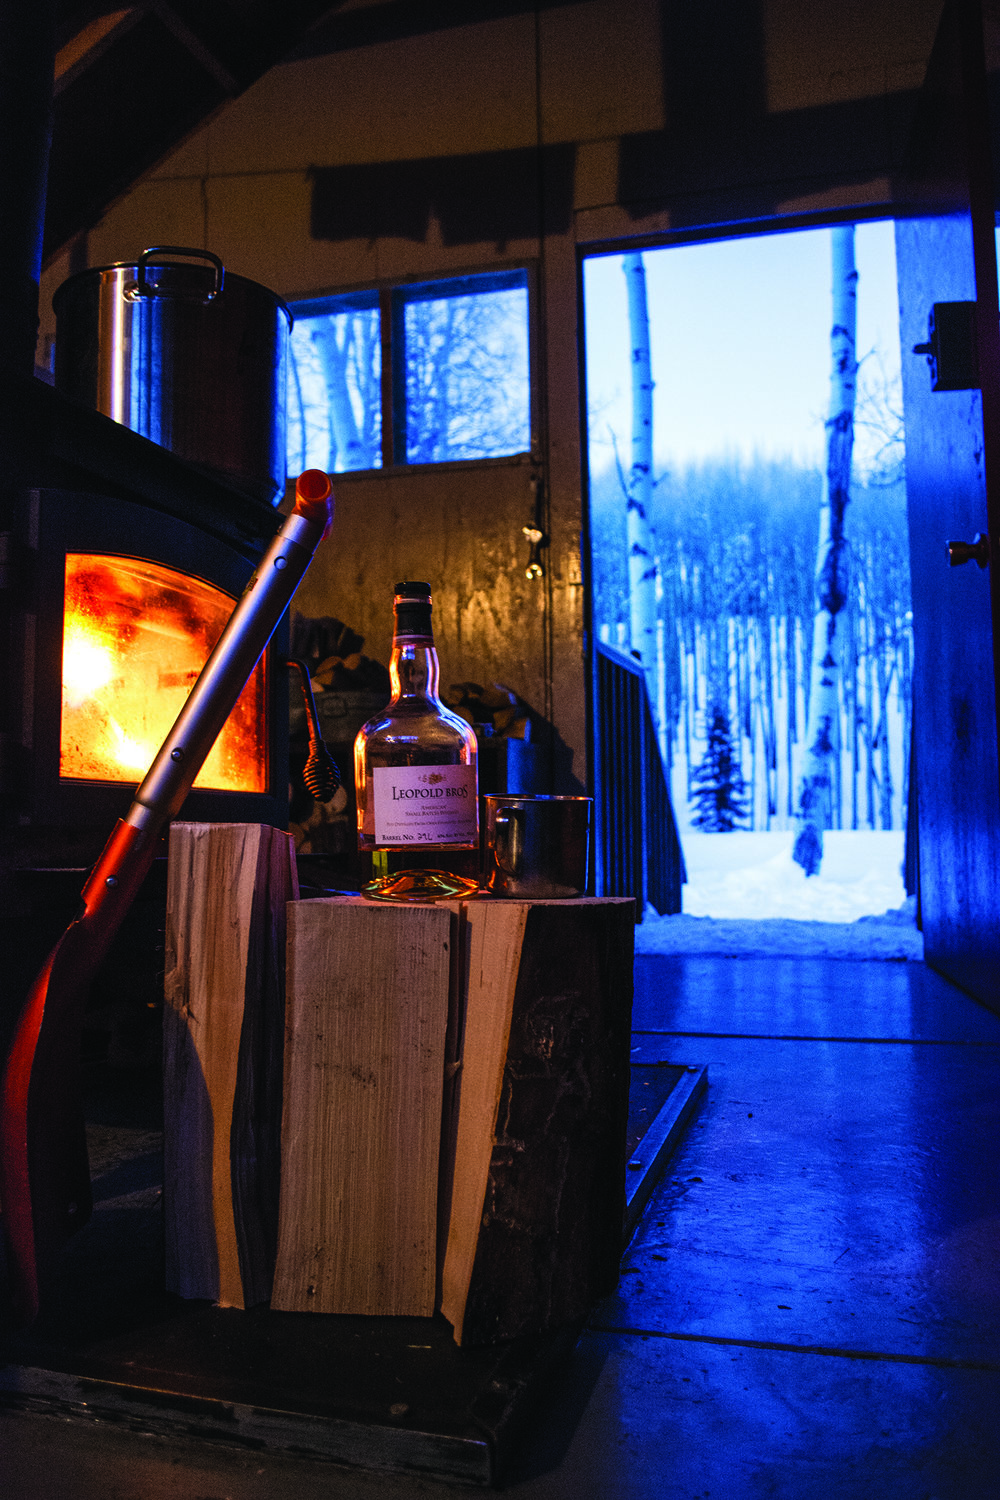 A hard day of skiing calls for a dram of Leopold's whiskey while the fire roars at the Burn Hut.